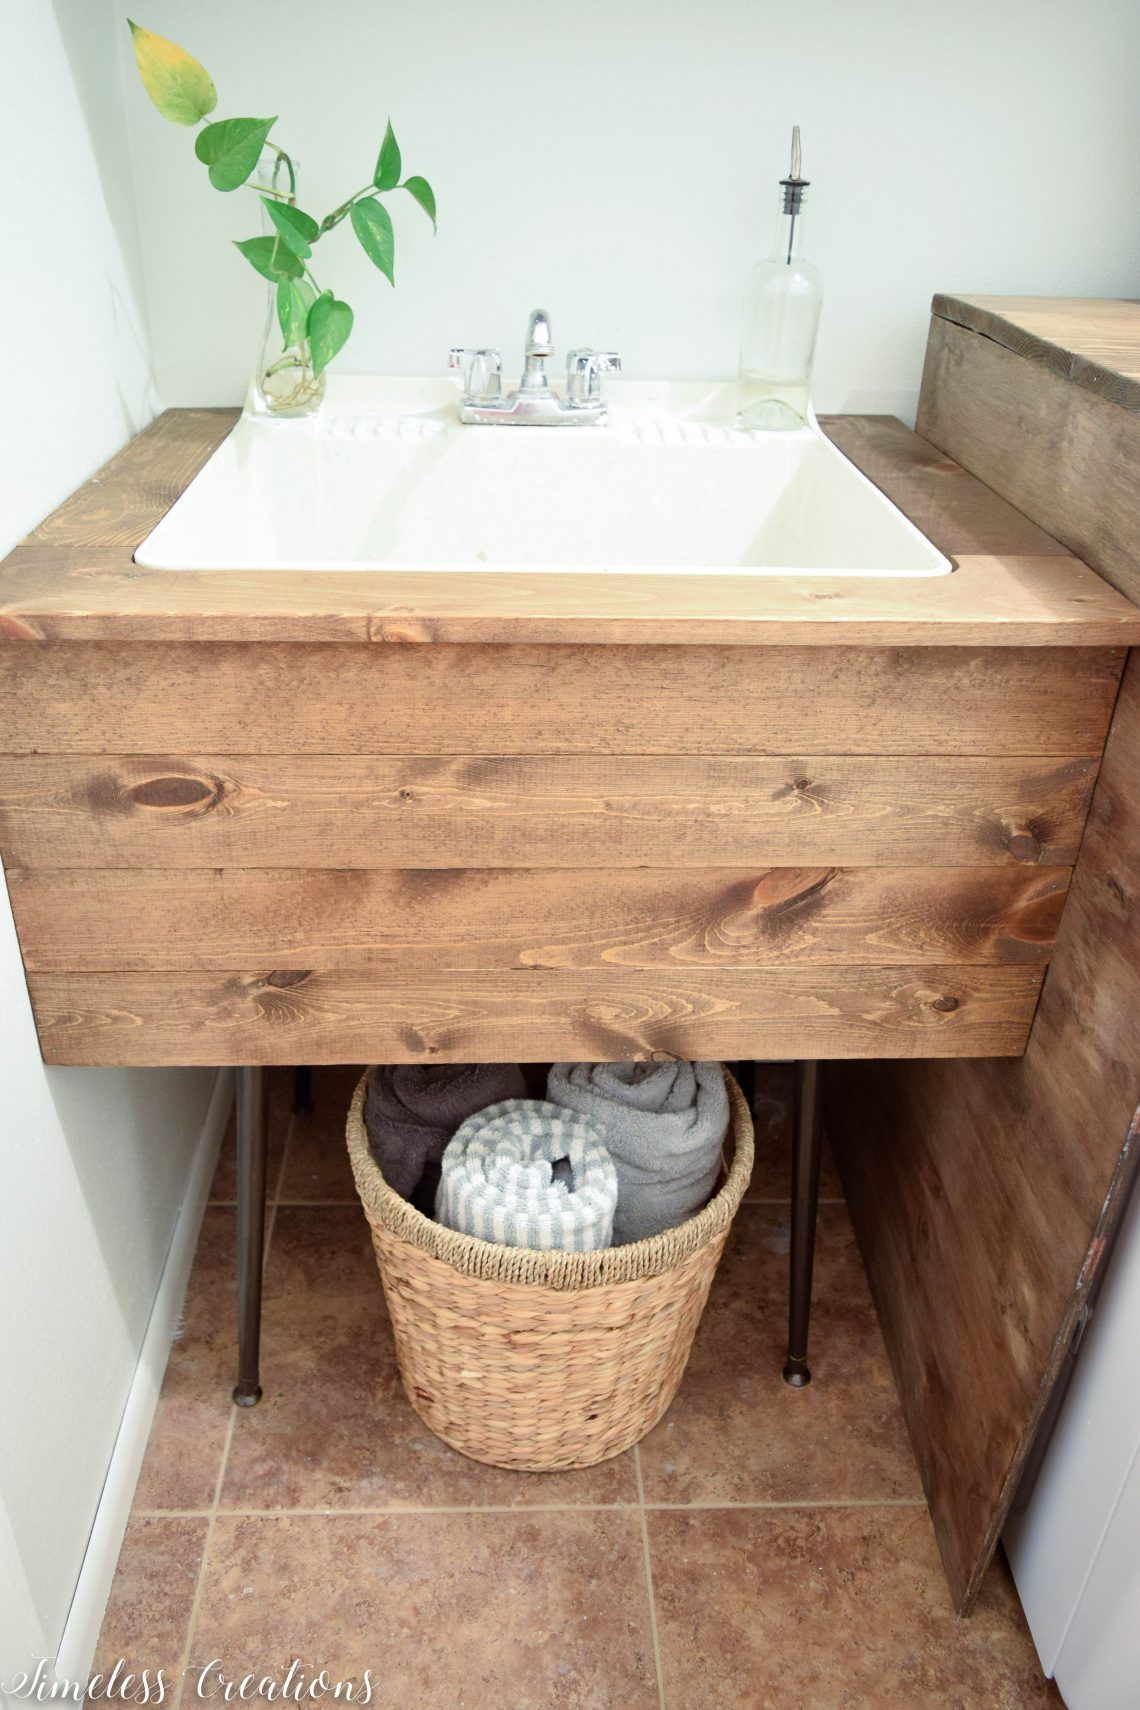 Diy Utility Sink Makeover With Images Laundry Room Design